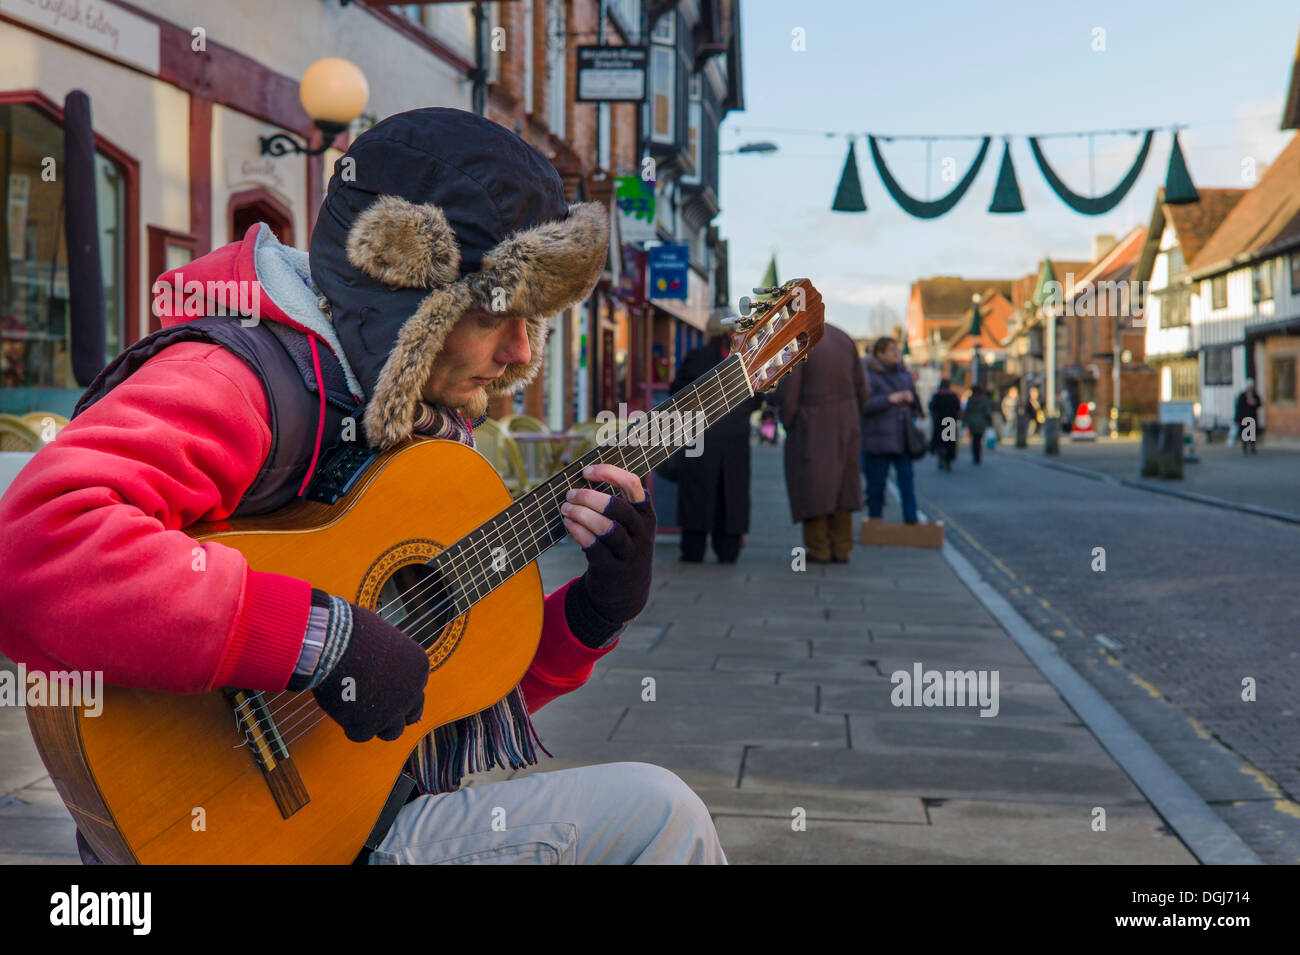 A busker playing classical guitar in Stratford-upon-Avon. - Stock Image